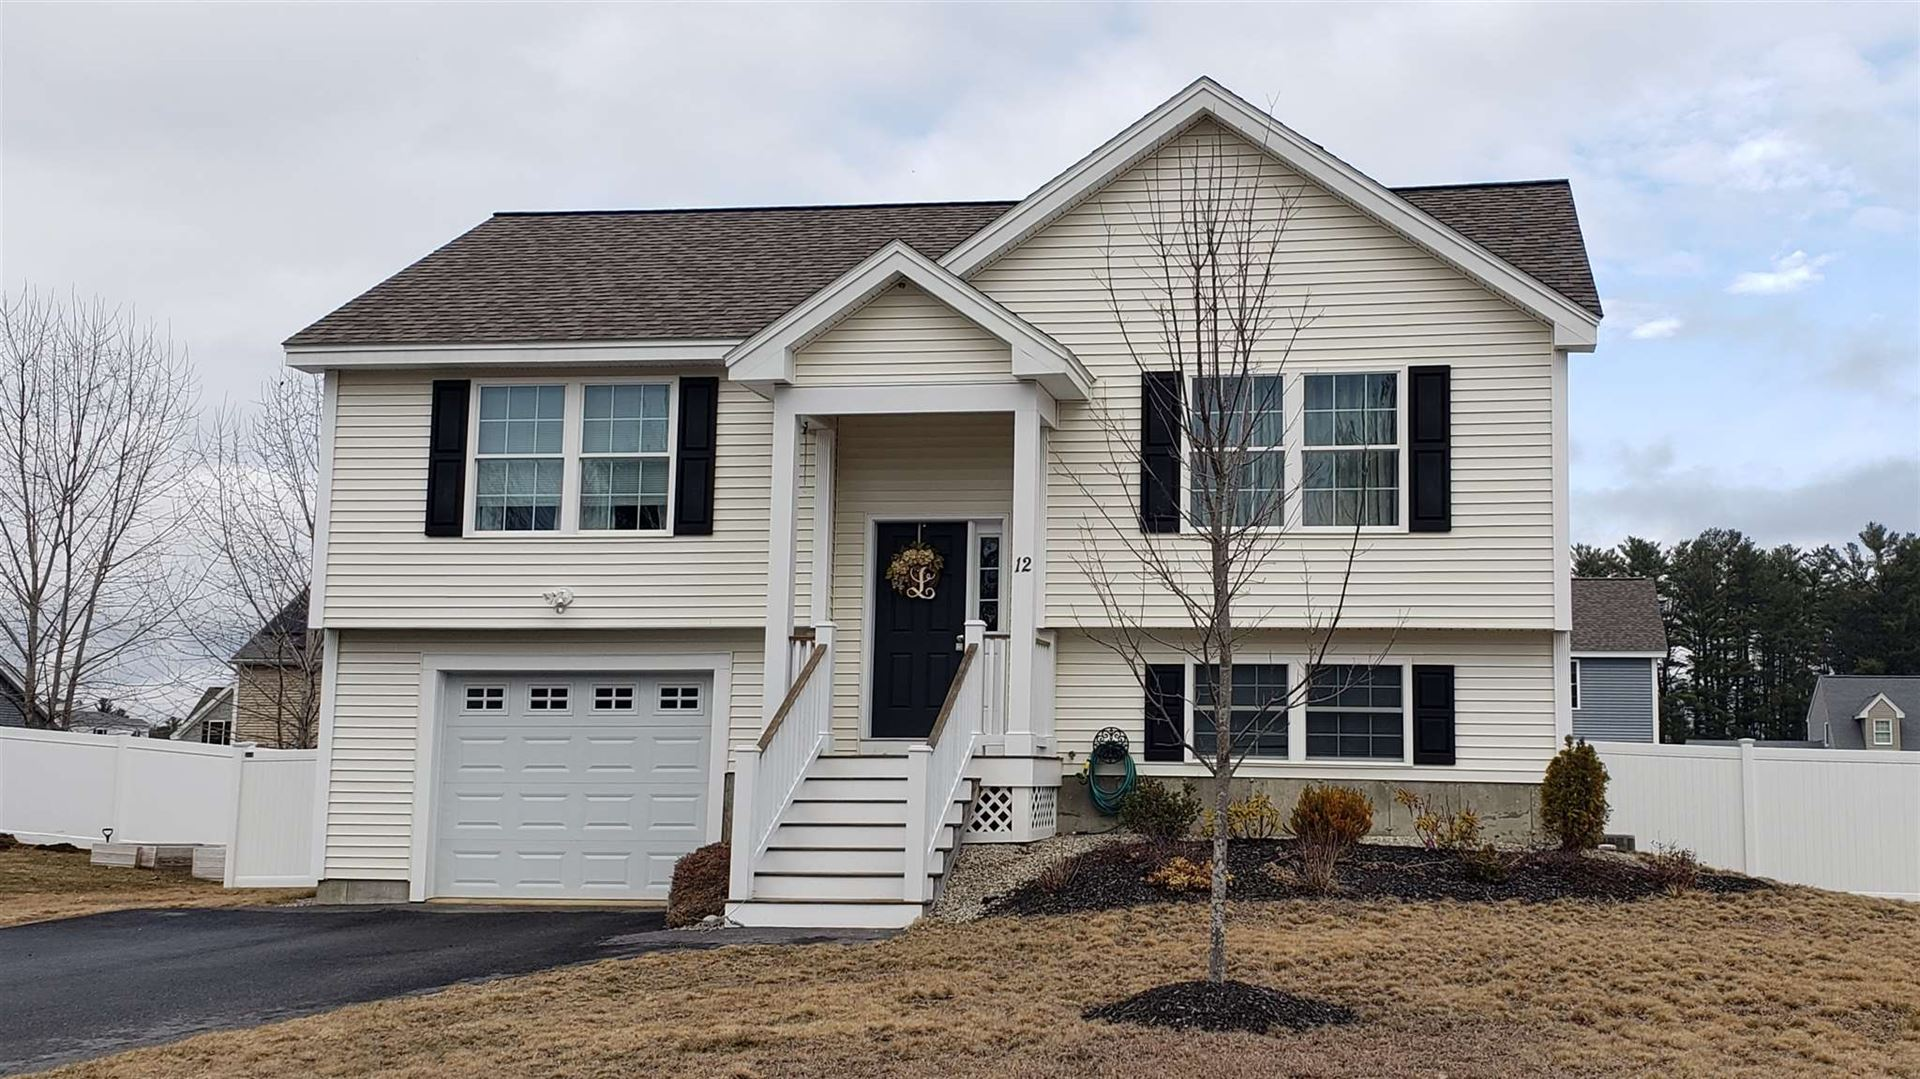 12 Ty Lane, Concord, NH 03303 - #: 4799329